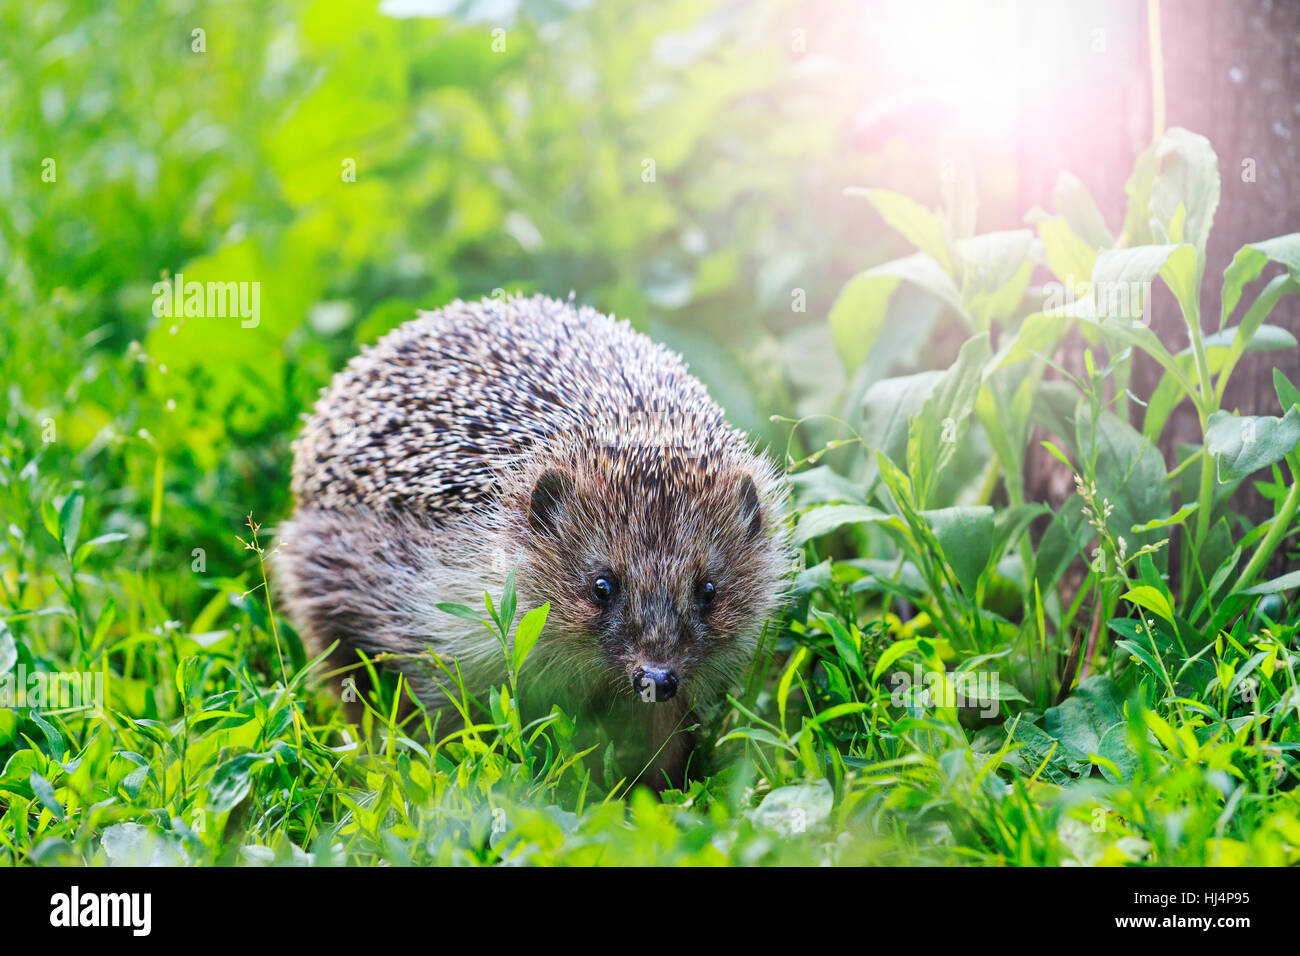 Hedgehog among the green grass in the garden with sunny hotspot,animals, animal barbed needles, mammals - Stock Image